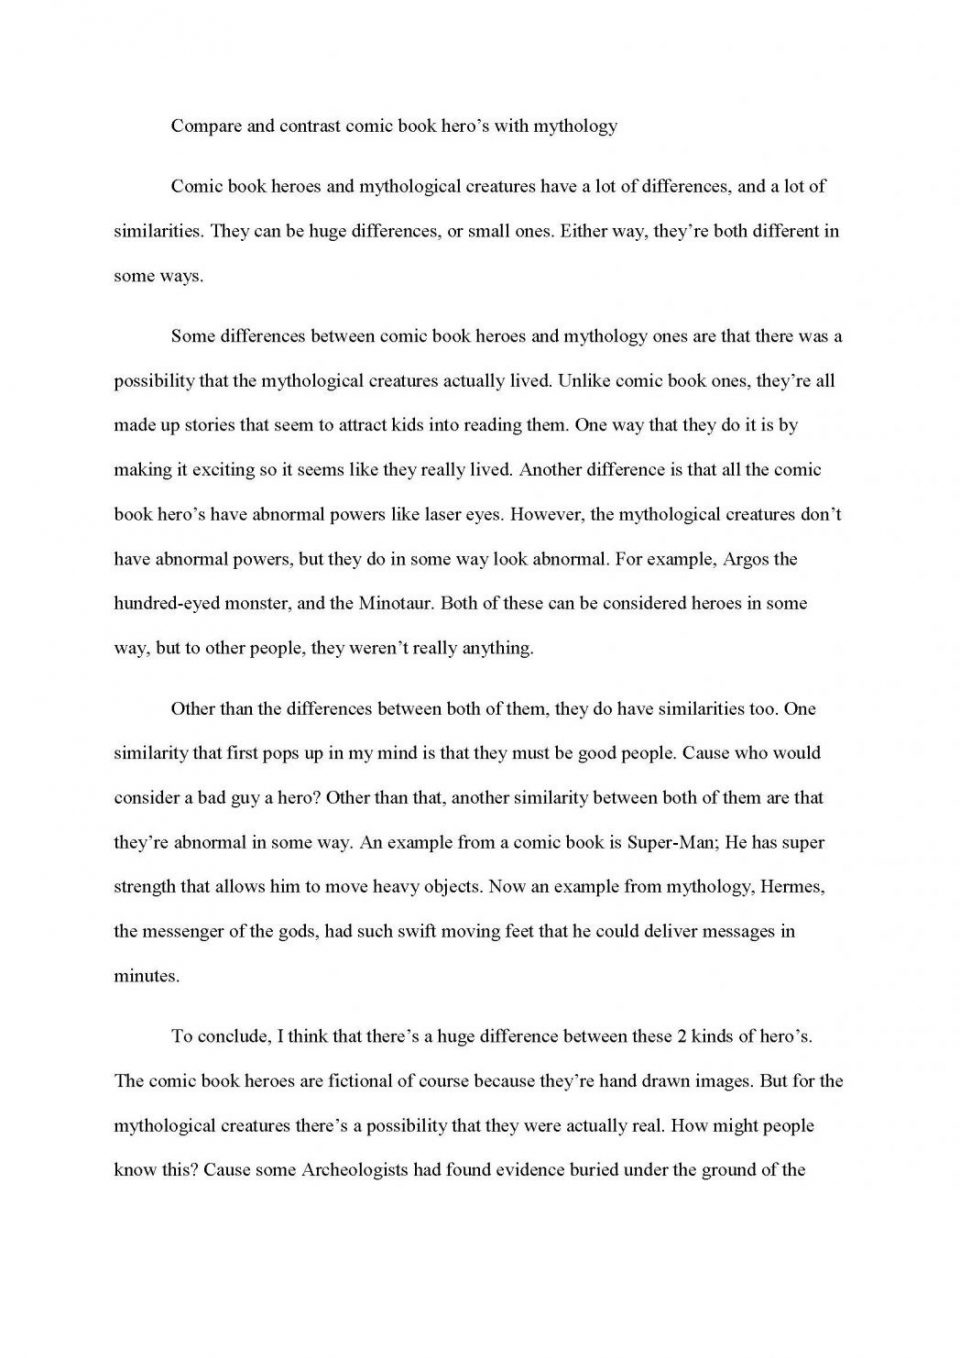 015 Good High School Essay Topics Sample For Writing Examples Accuplacer Descriptive To Write Easy About Personal College Narrative Informative Researcher Synthesis Persuasive 960x1358 Staggering Research Paper Prompts Middle Students Health Full